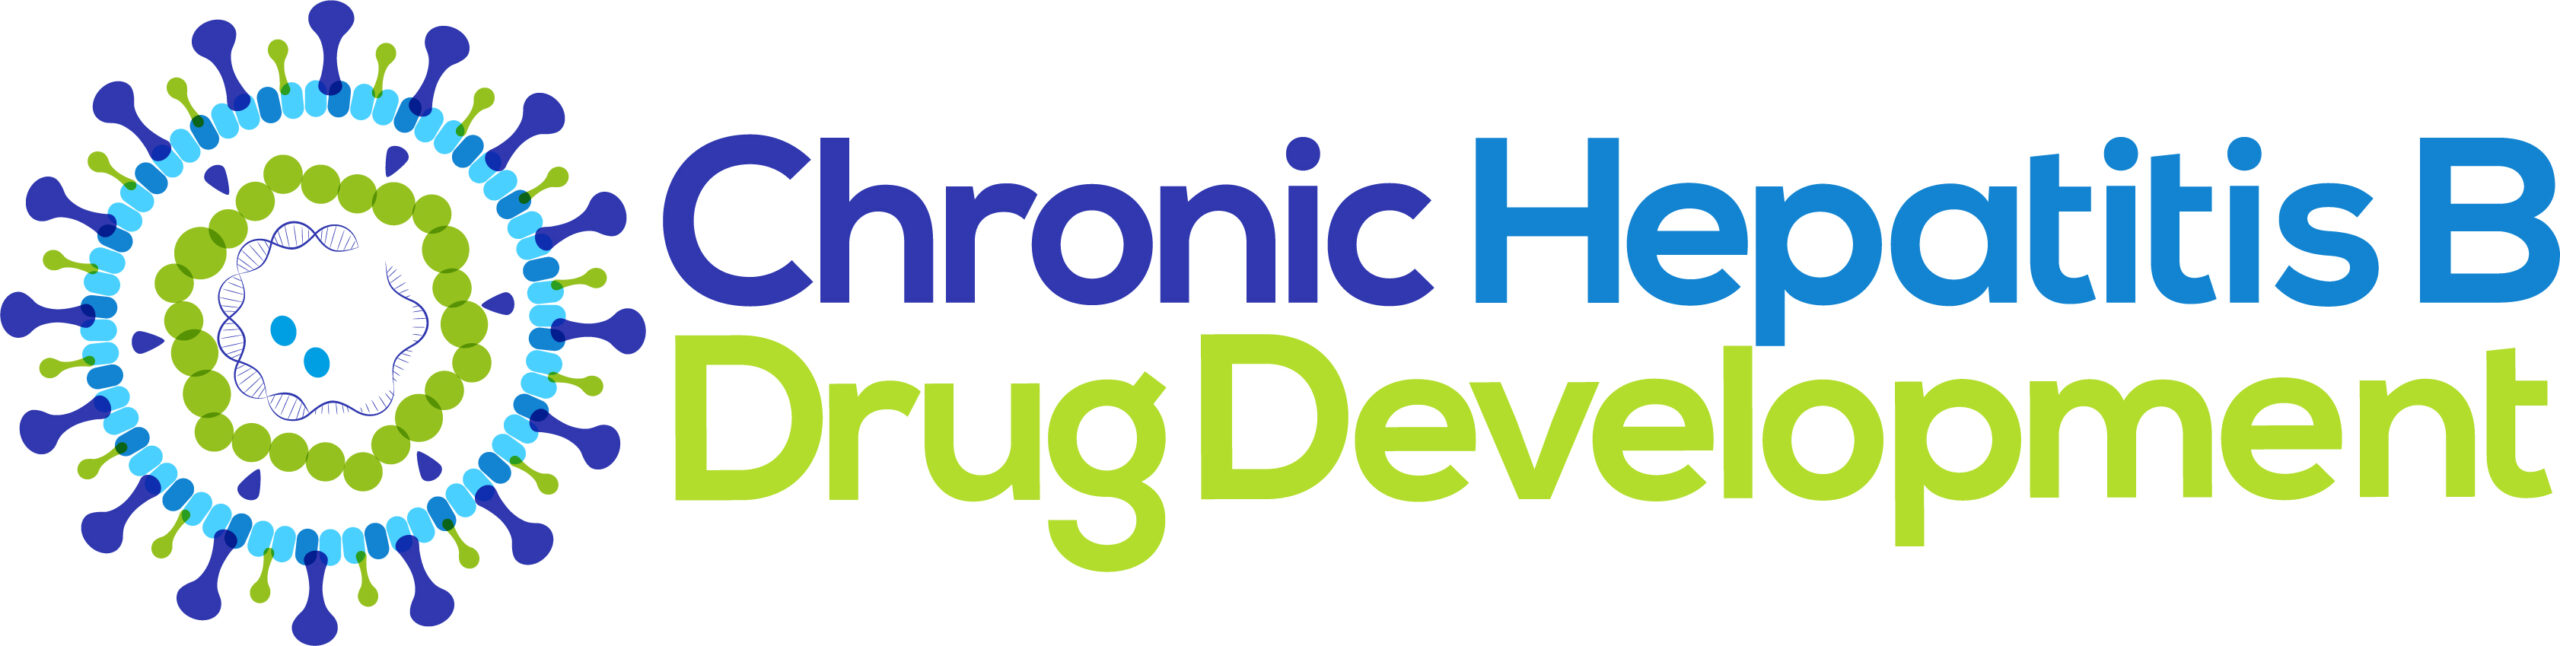 Chronic Hepatitis B Drug Development logo